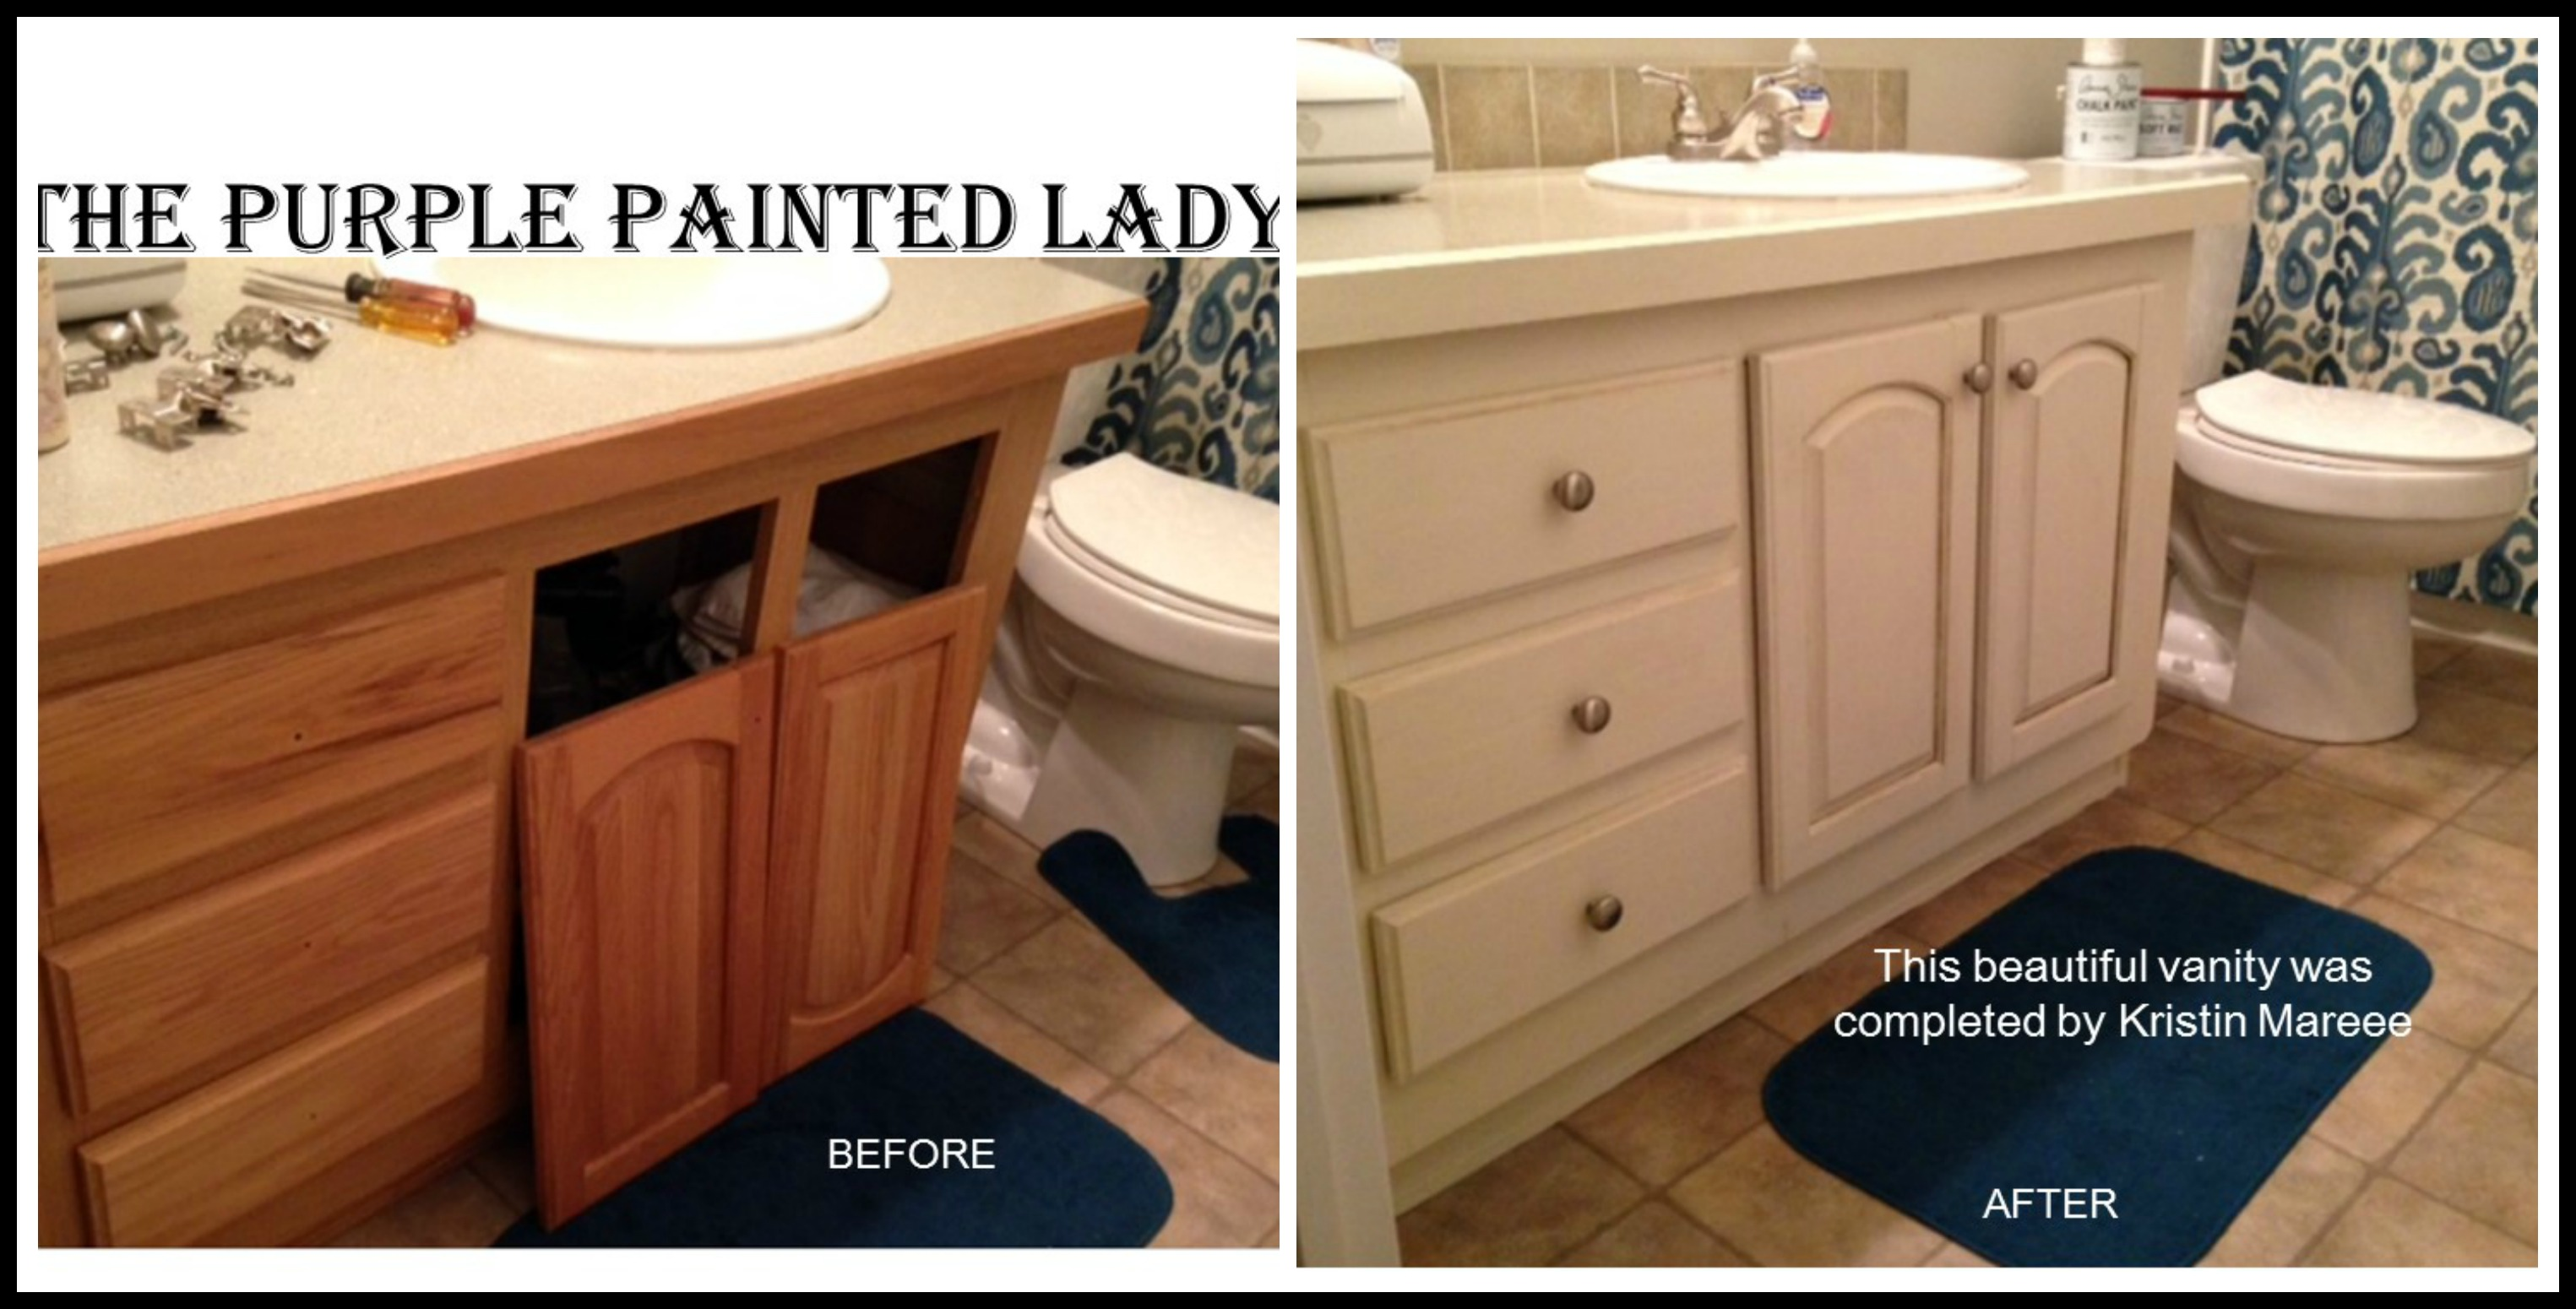 The Purple Painted Lady Vanity Before & after Chalk Paint PicMonkey Collage